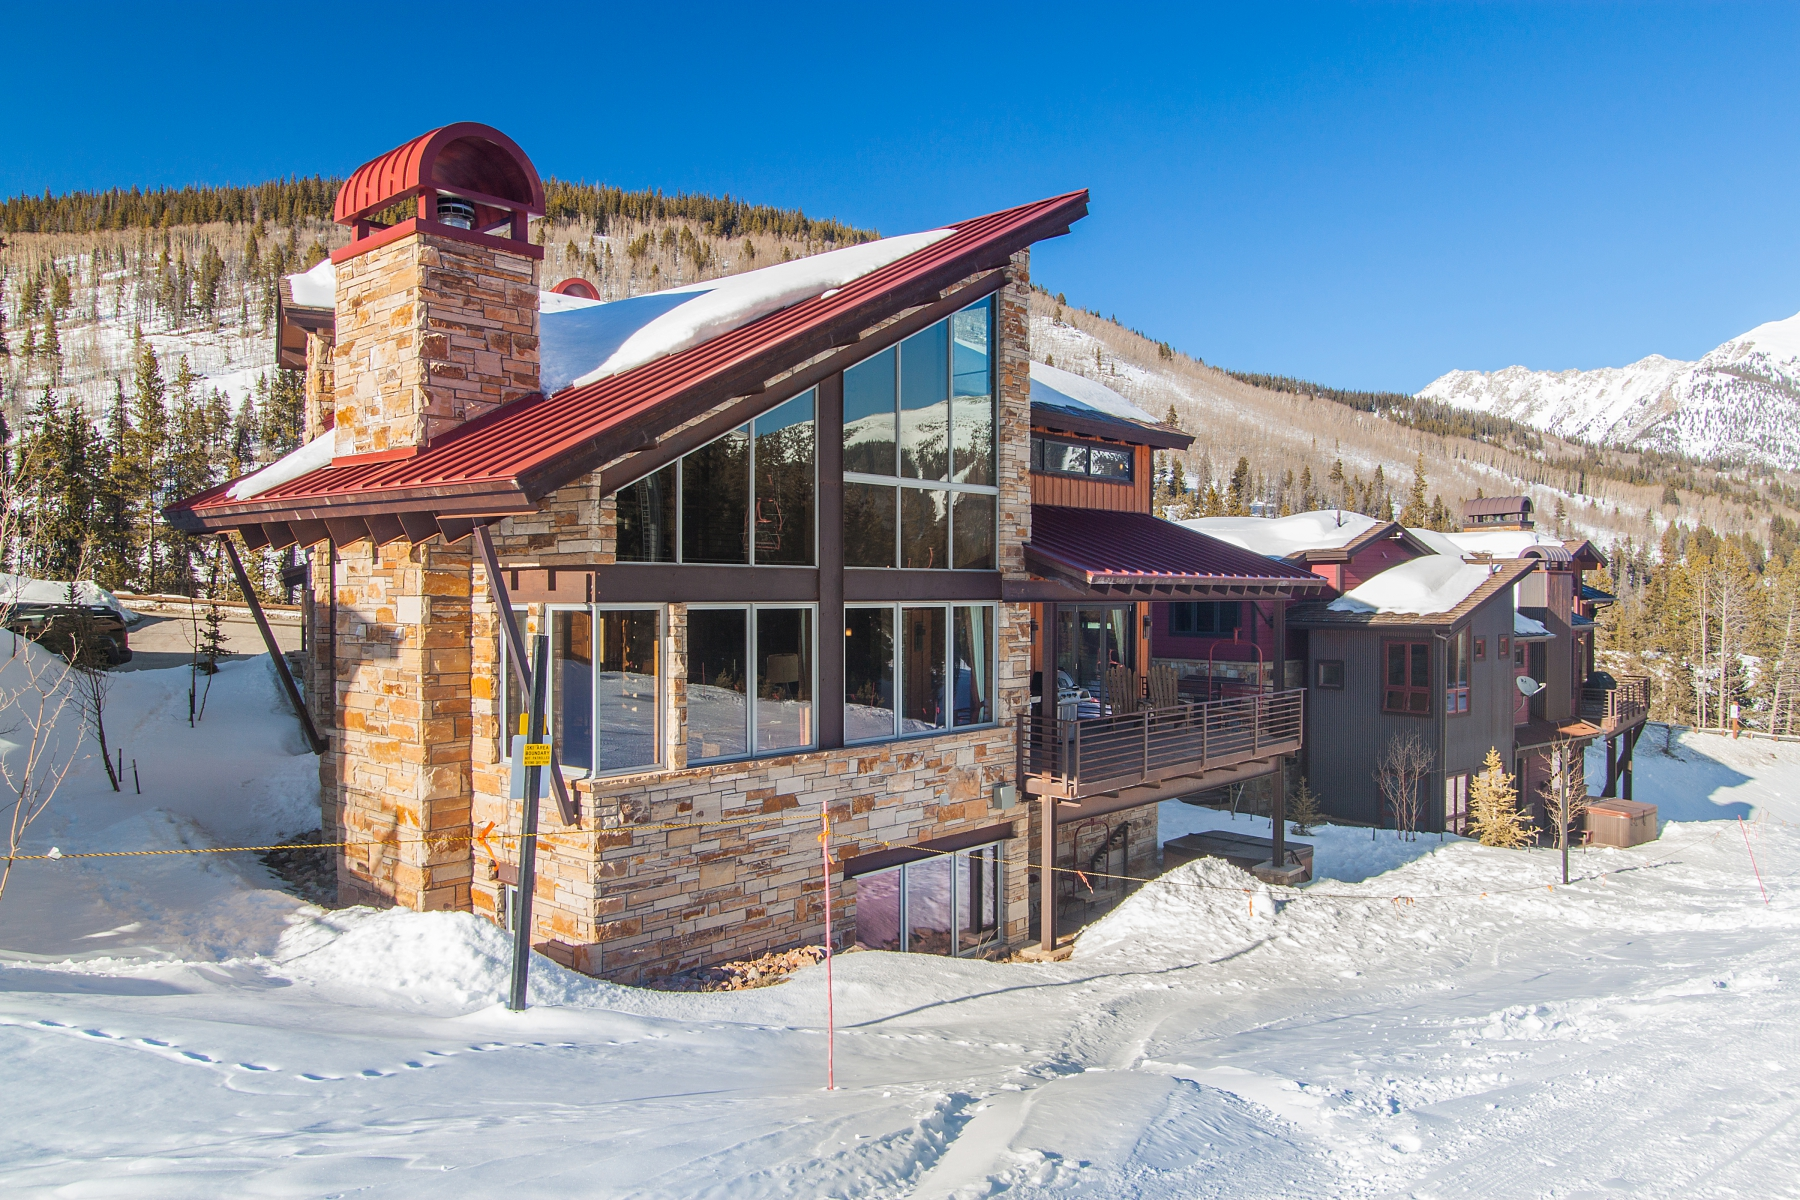 Single Family Home for Sale at Trophy Slopeside Home Boasting Impressive Views 500 Beeler Place Copper Mountain, Colorado 80443 United States